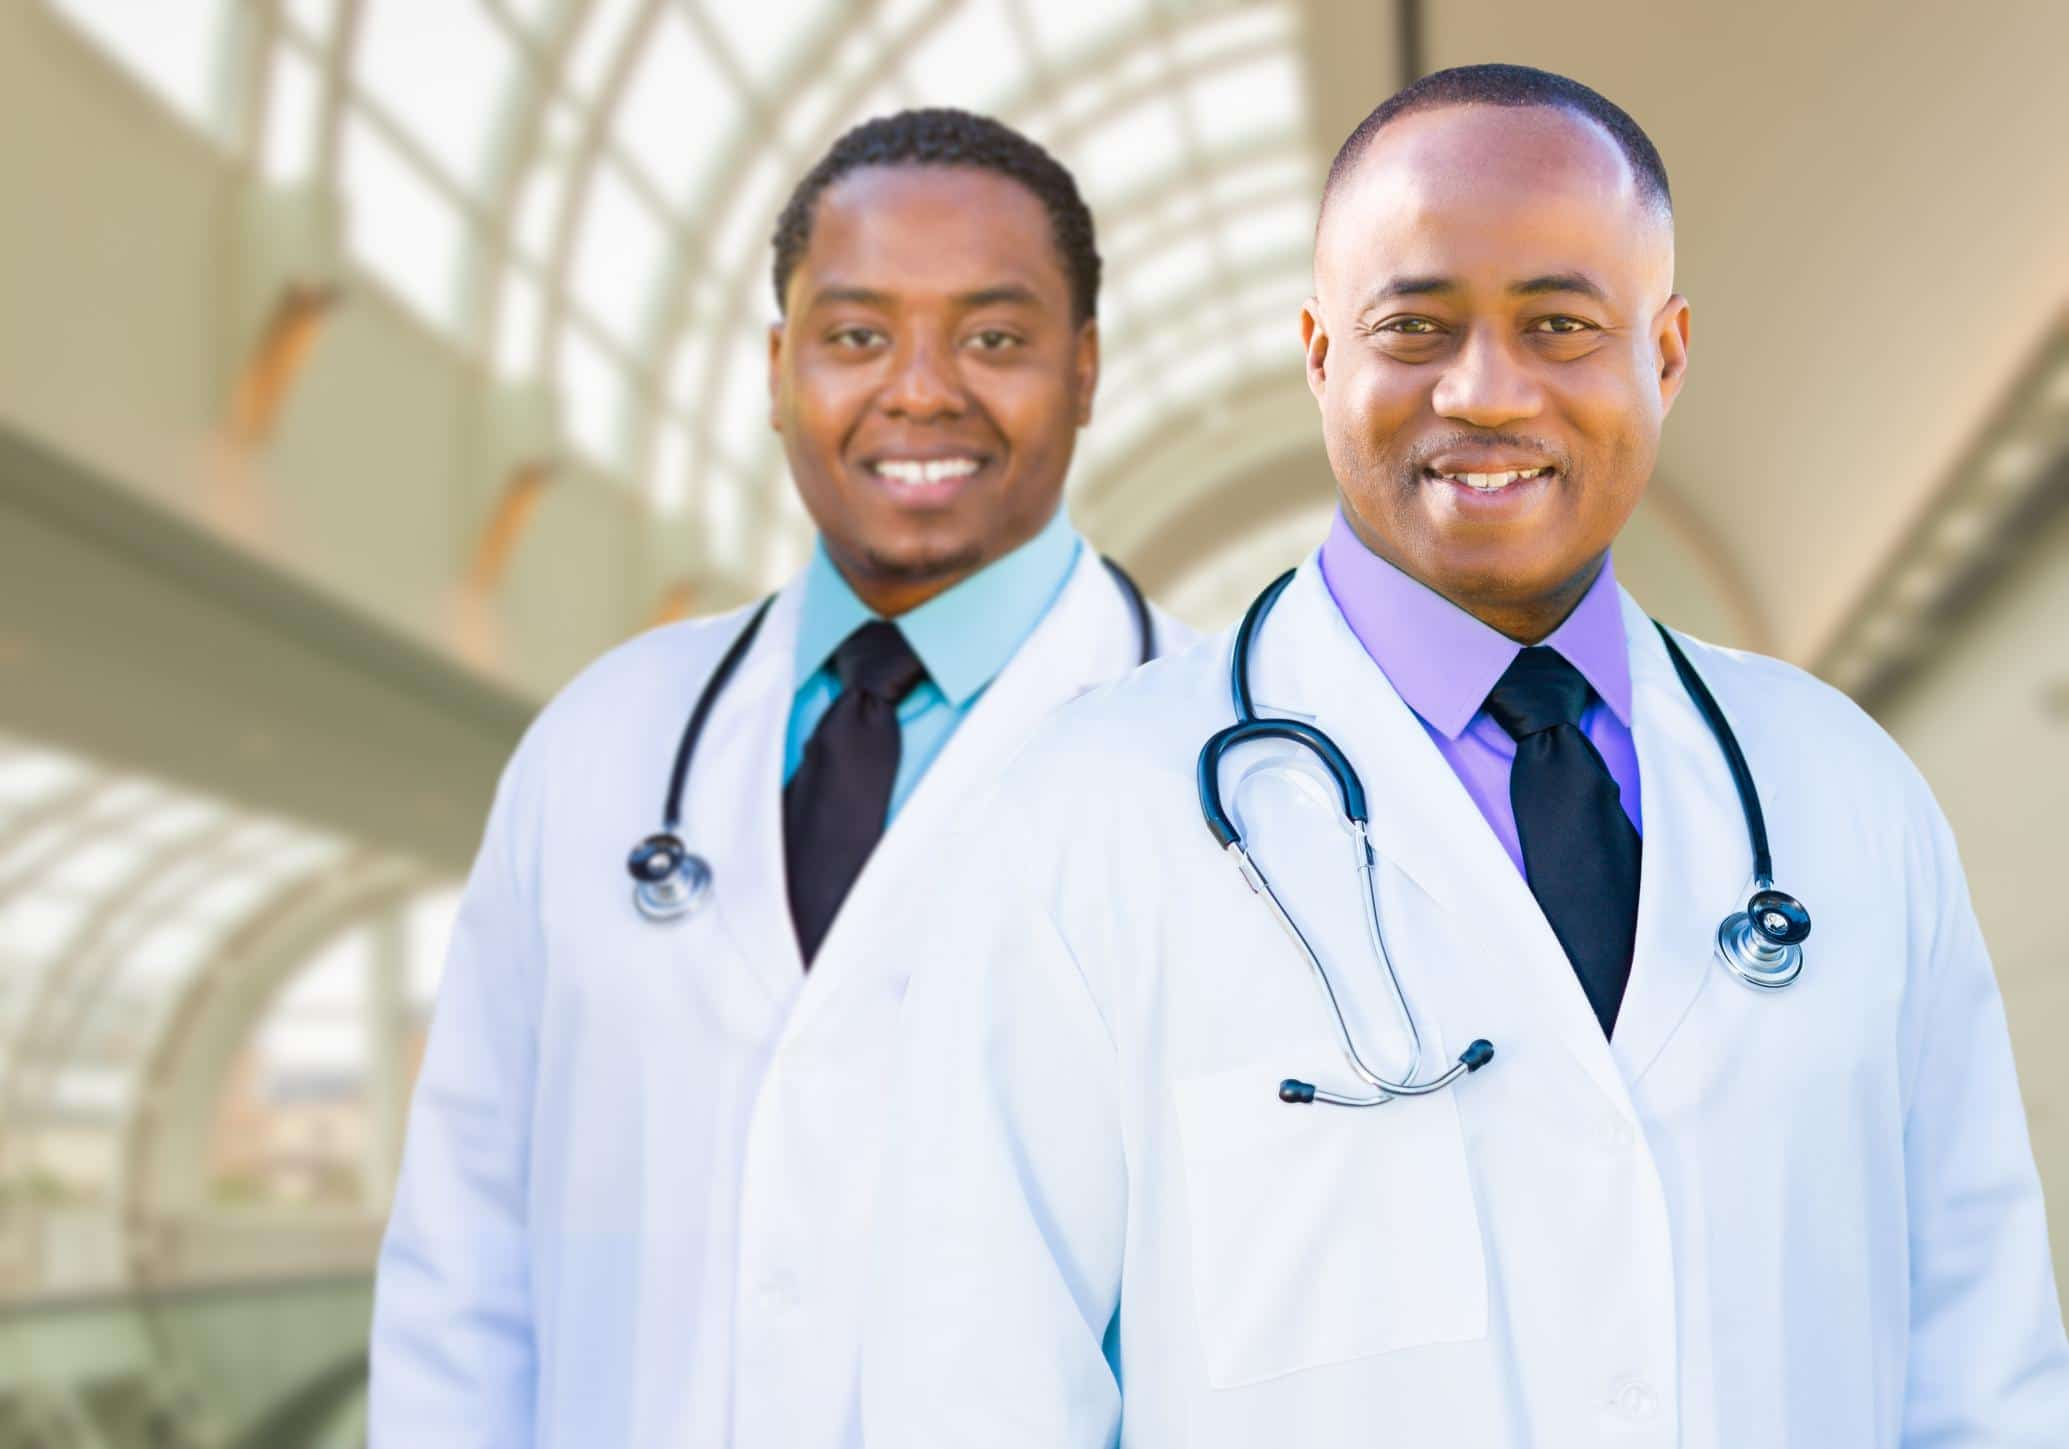 The First African American Doctors in America